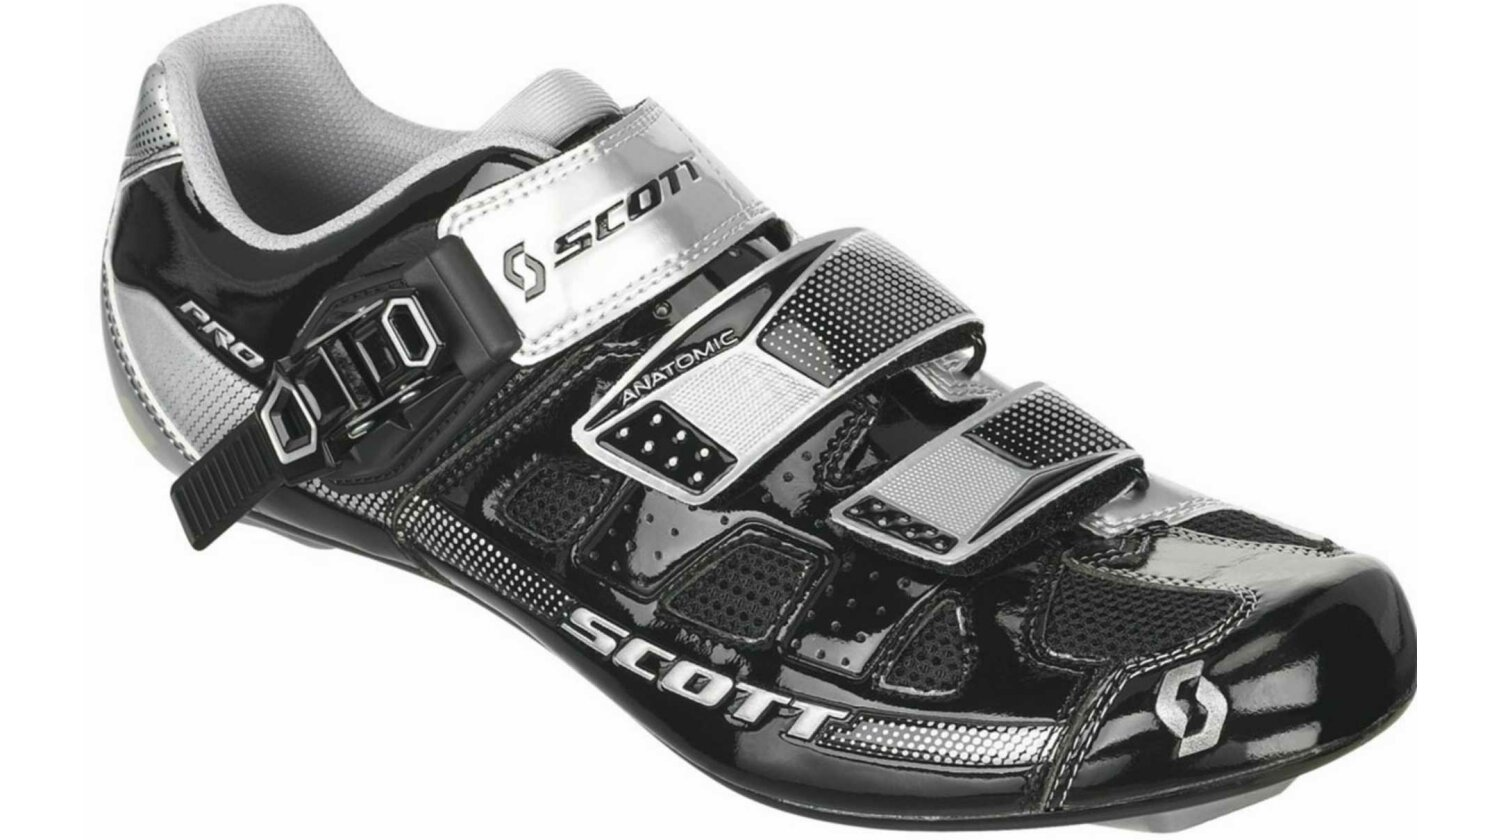 Scott Road Pro Schuh black/silver gloss 43